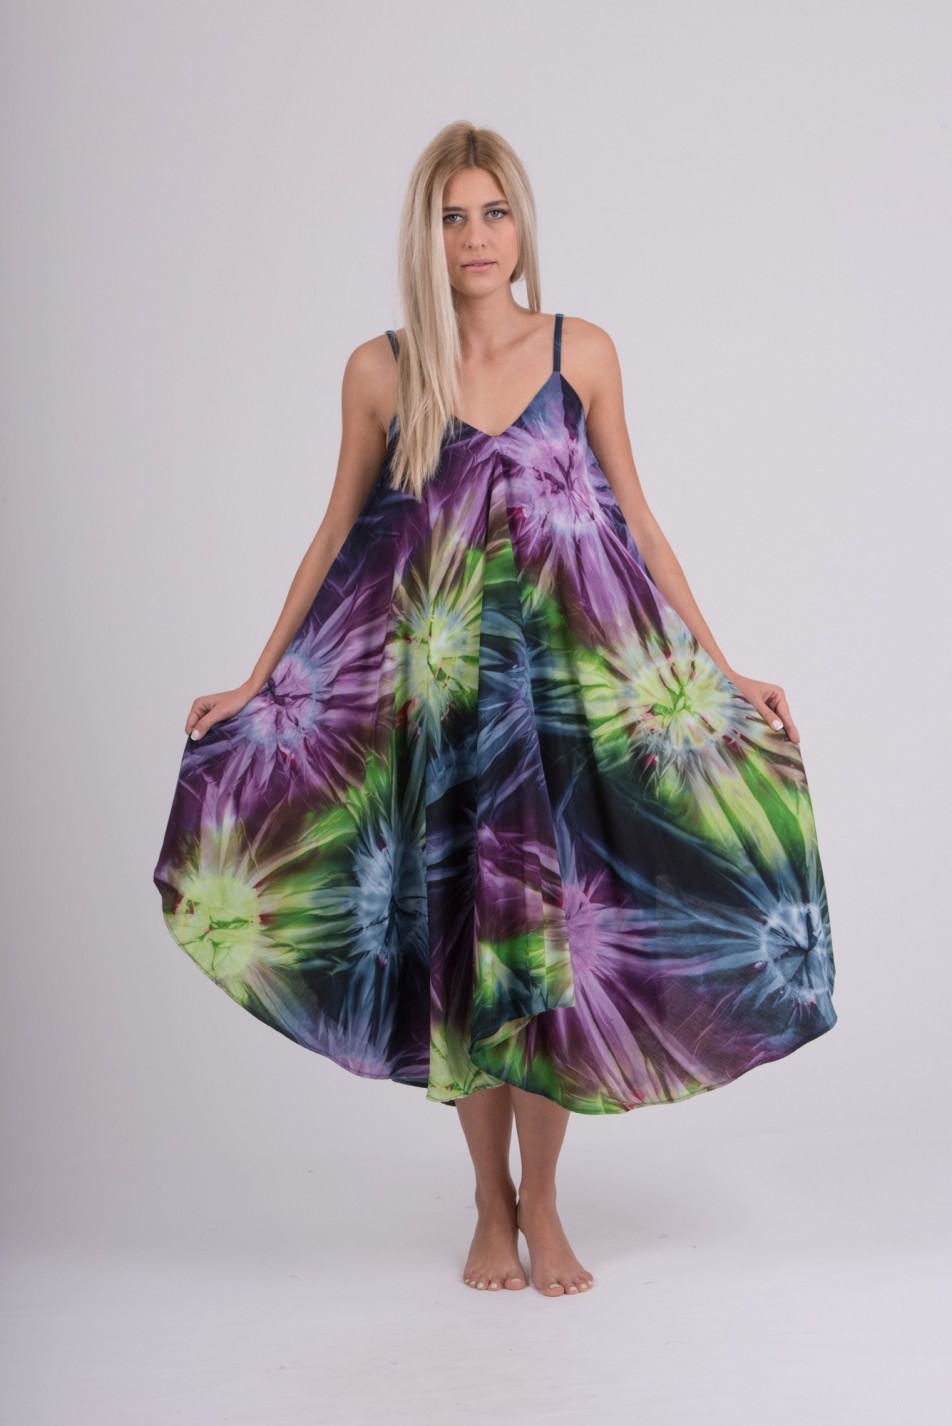 SUMMER DRESS TIE DYE OVAL